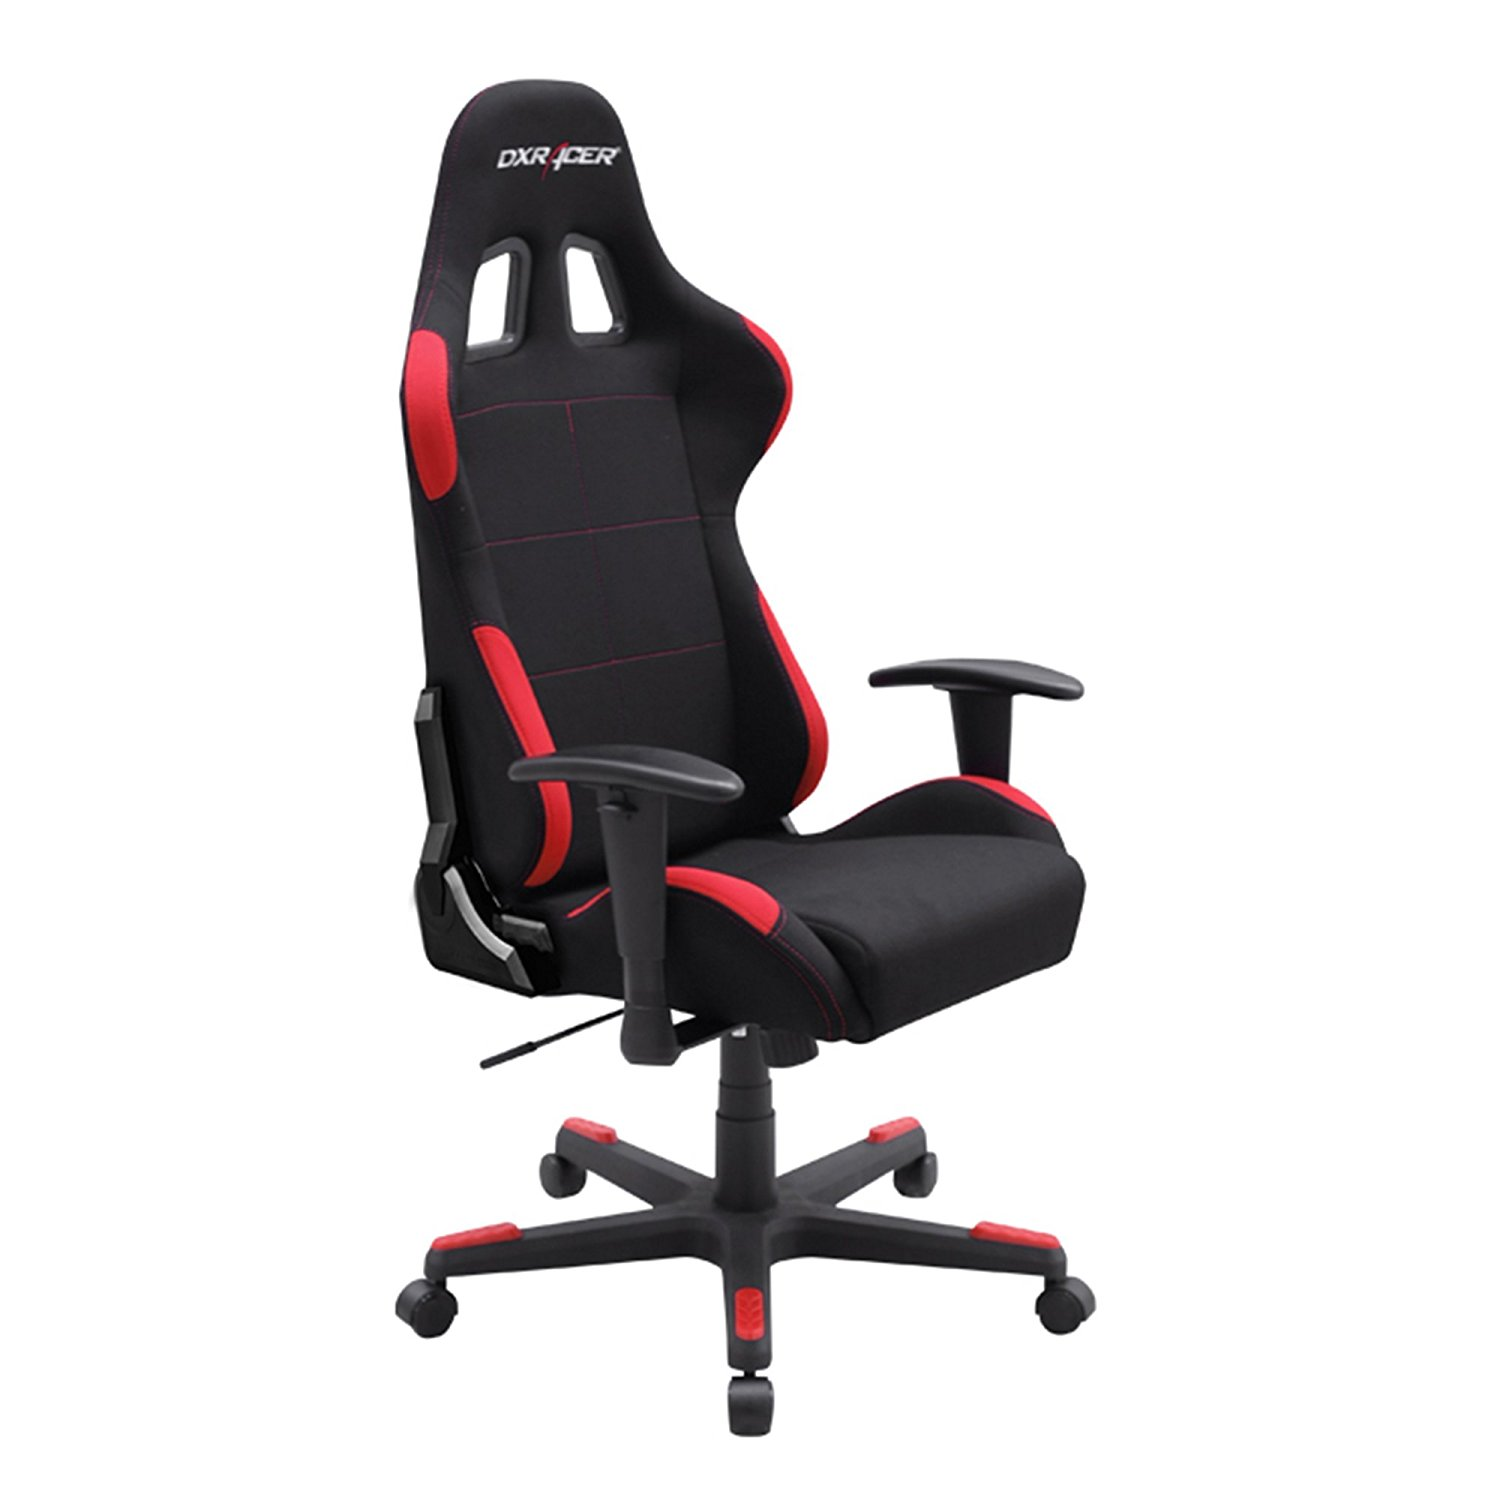 Dxr Chair Dxracer Dx Racer Formula Series Oh Fd01 Nr Racing Style Seat